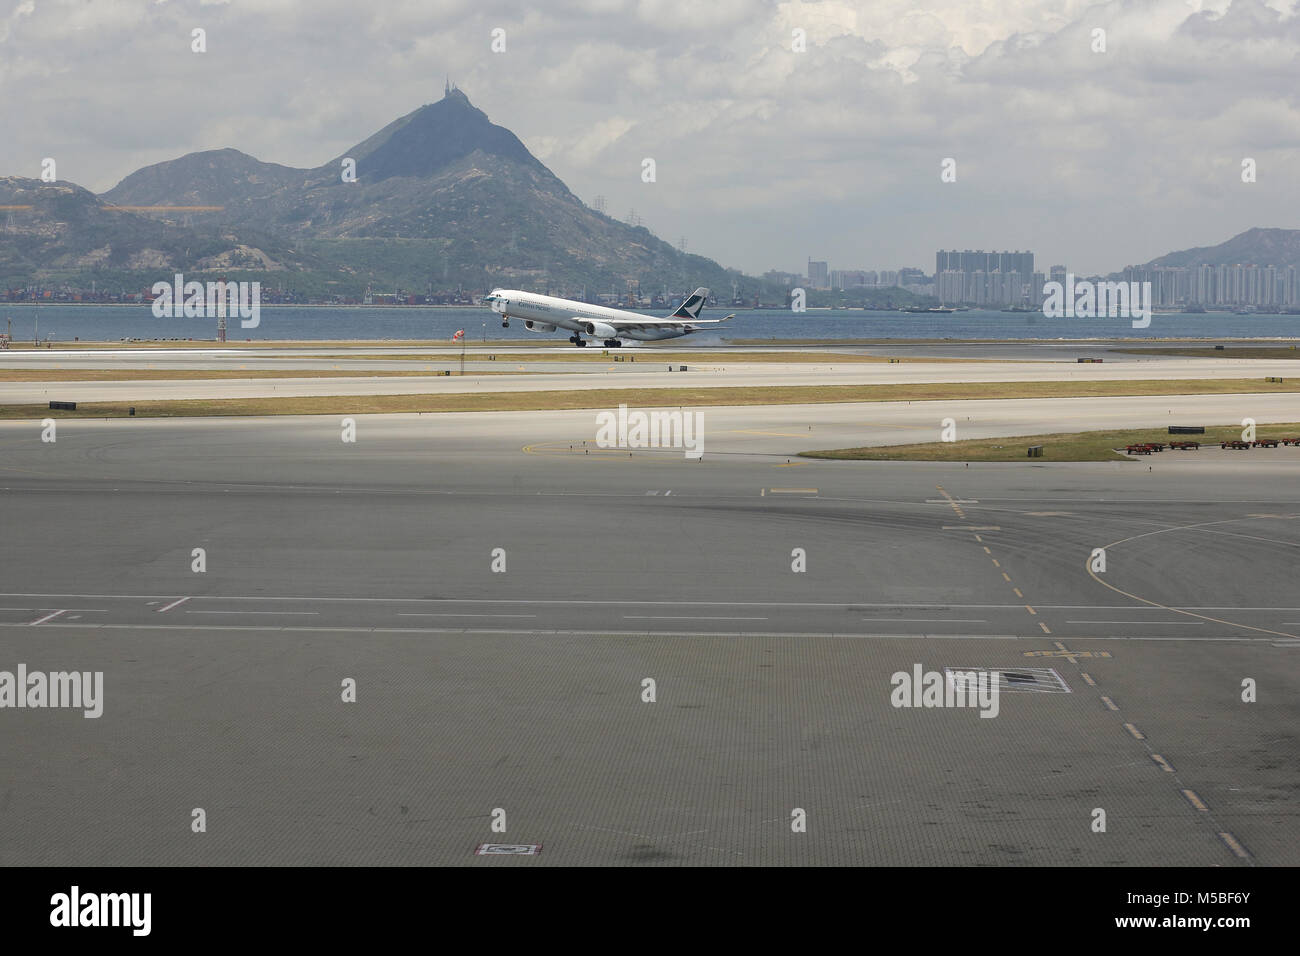 A plane from Cathay Pacific is landing off the Hong Kong Chek lap kok airport. - Stock Image